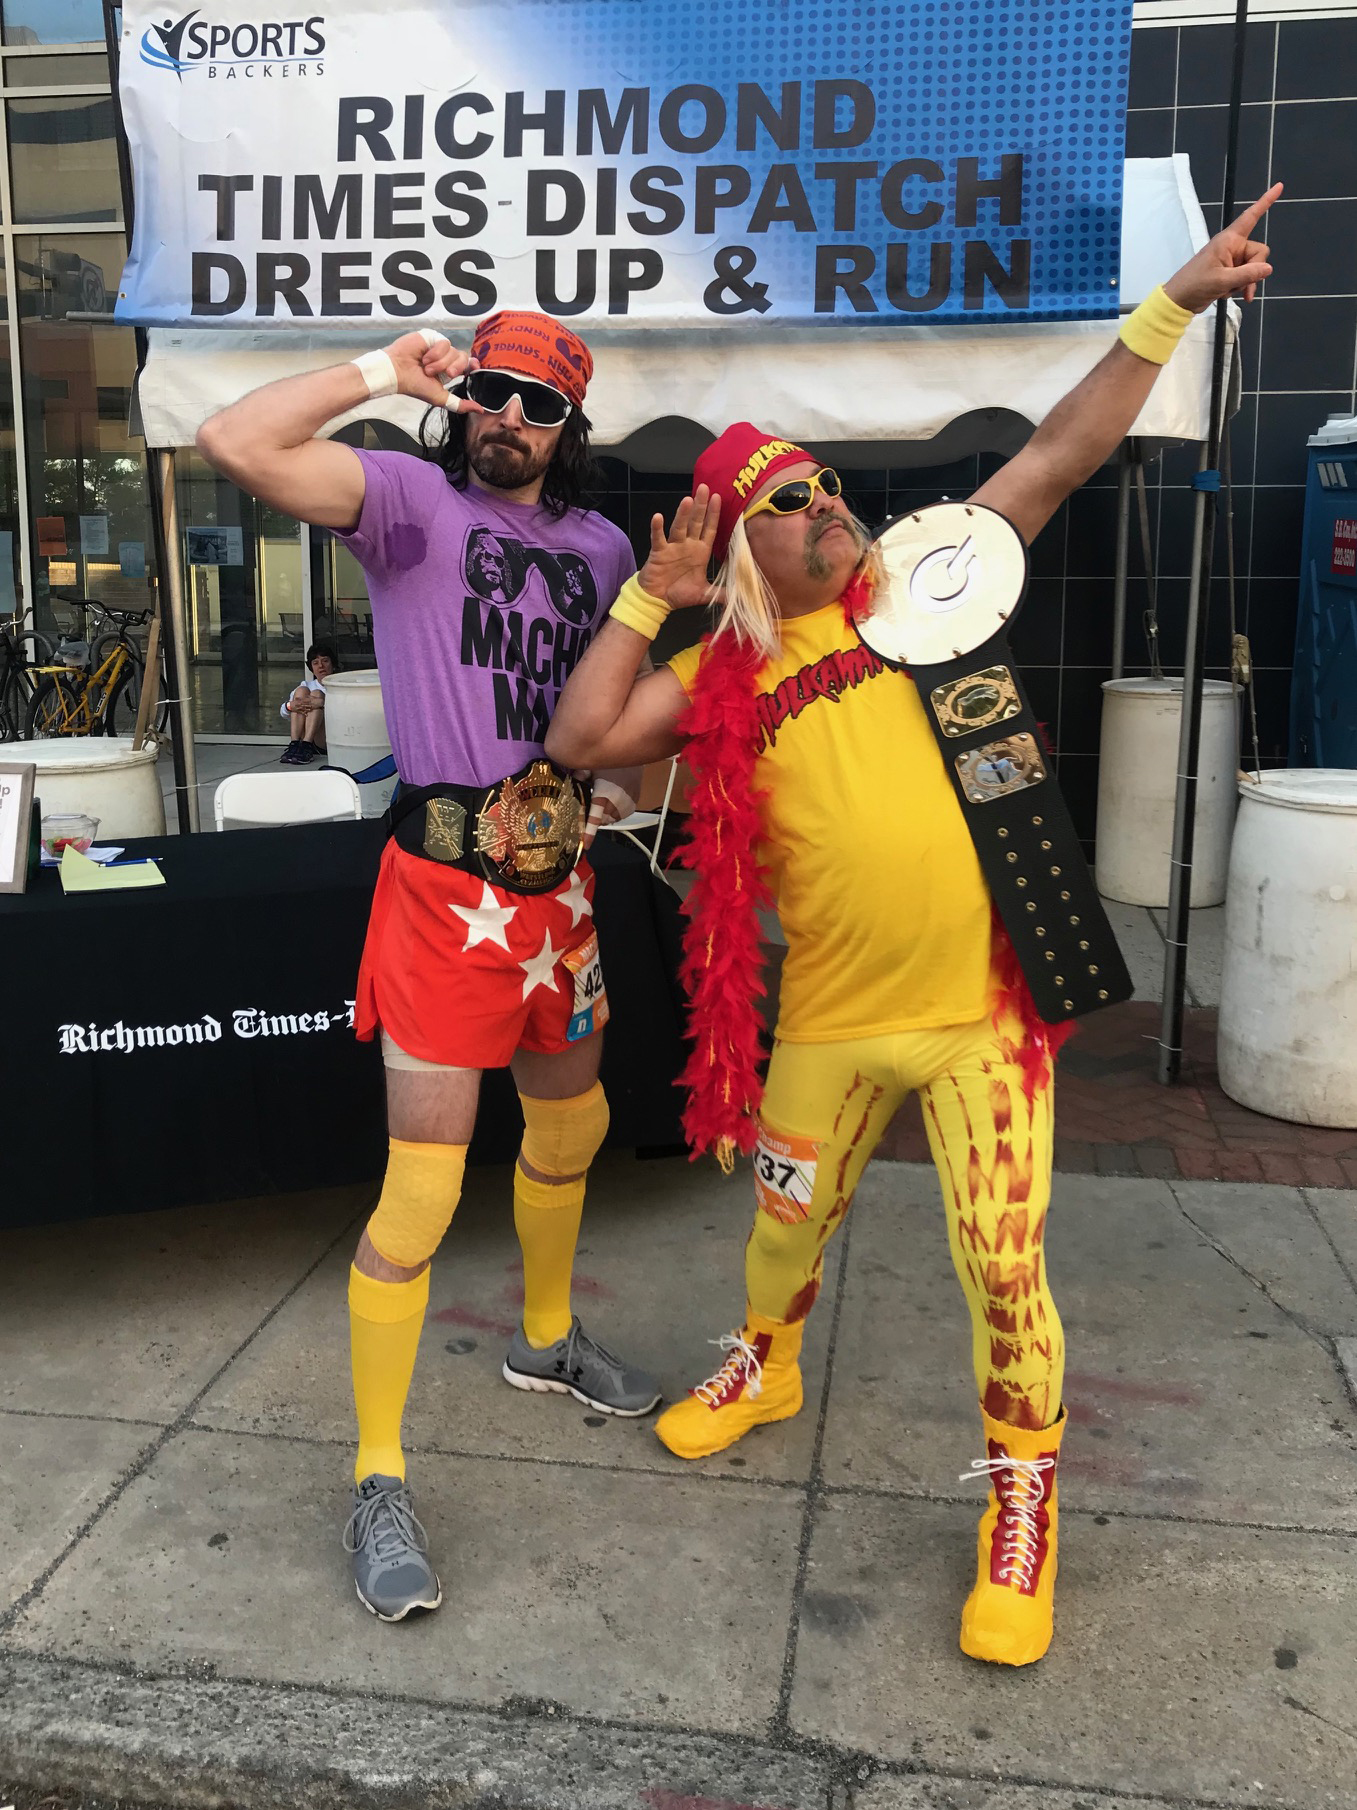 RTD Dress Up & Run Costume Contest Winners